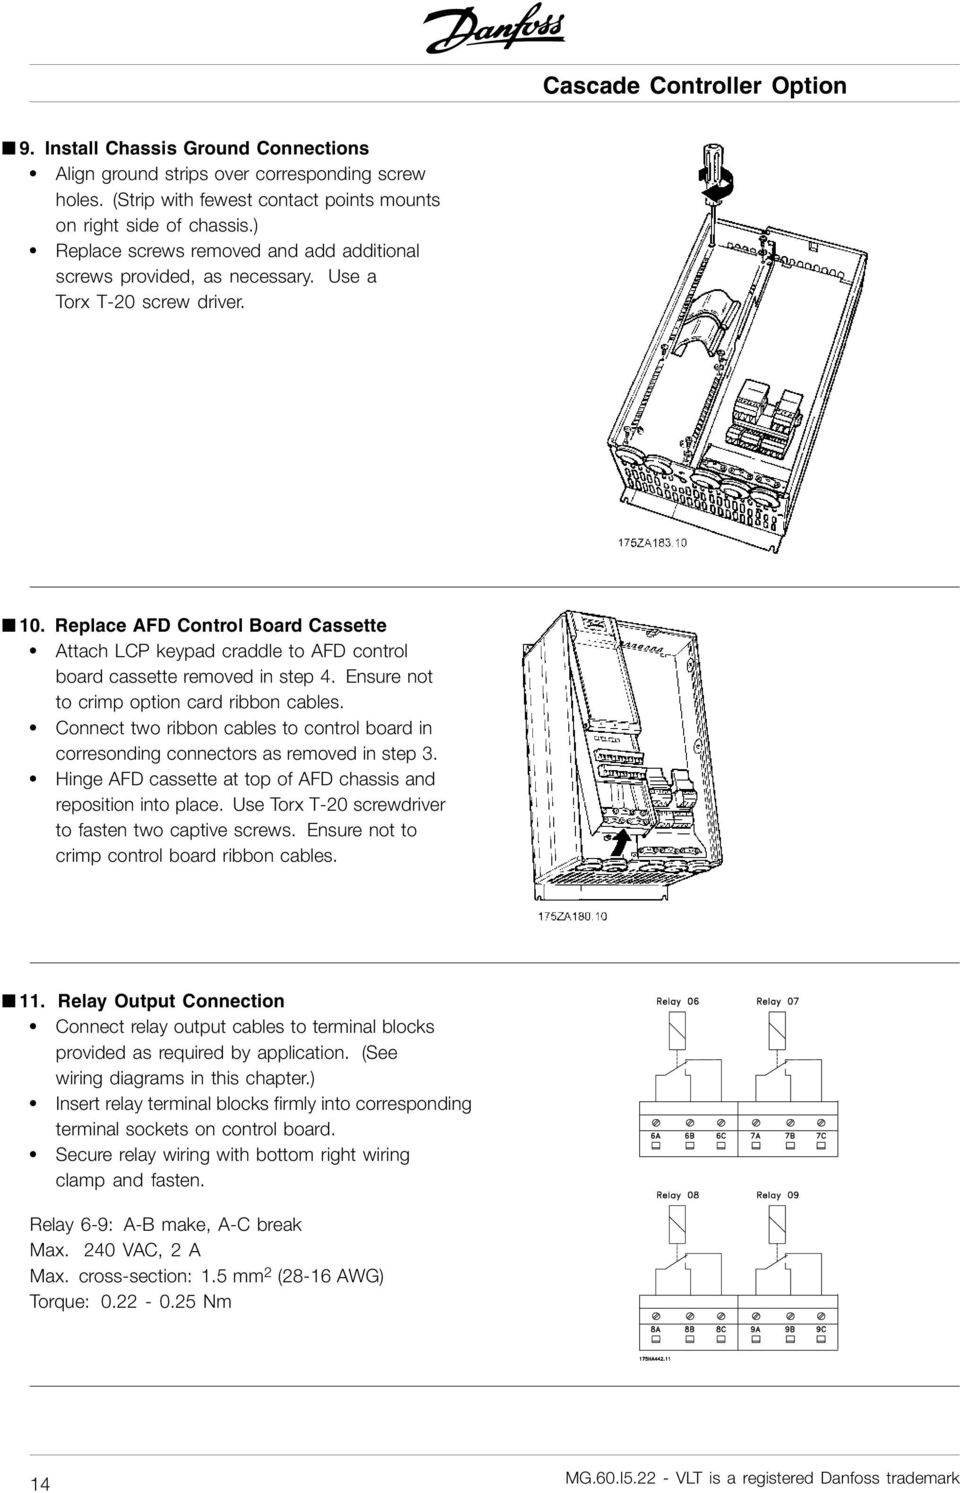 Danfoss Drive Wiring Diagram - Wiring Diagrams on